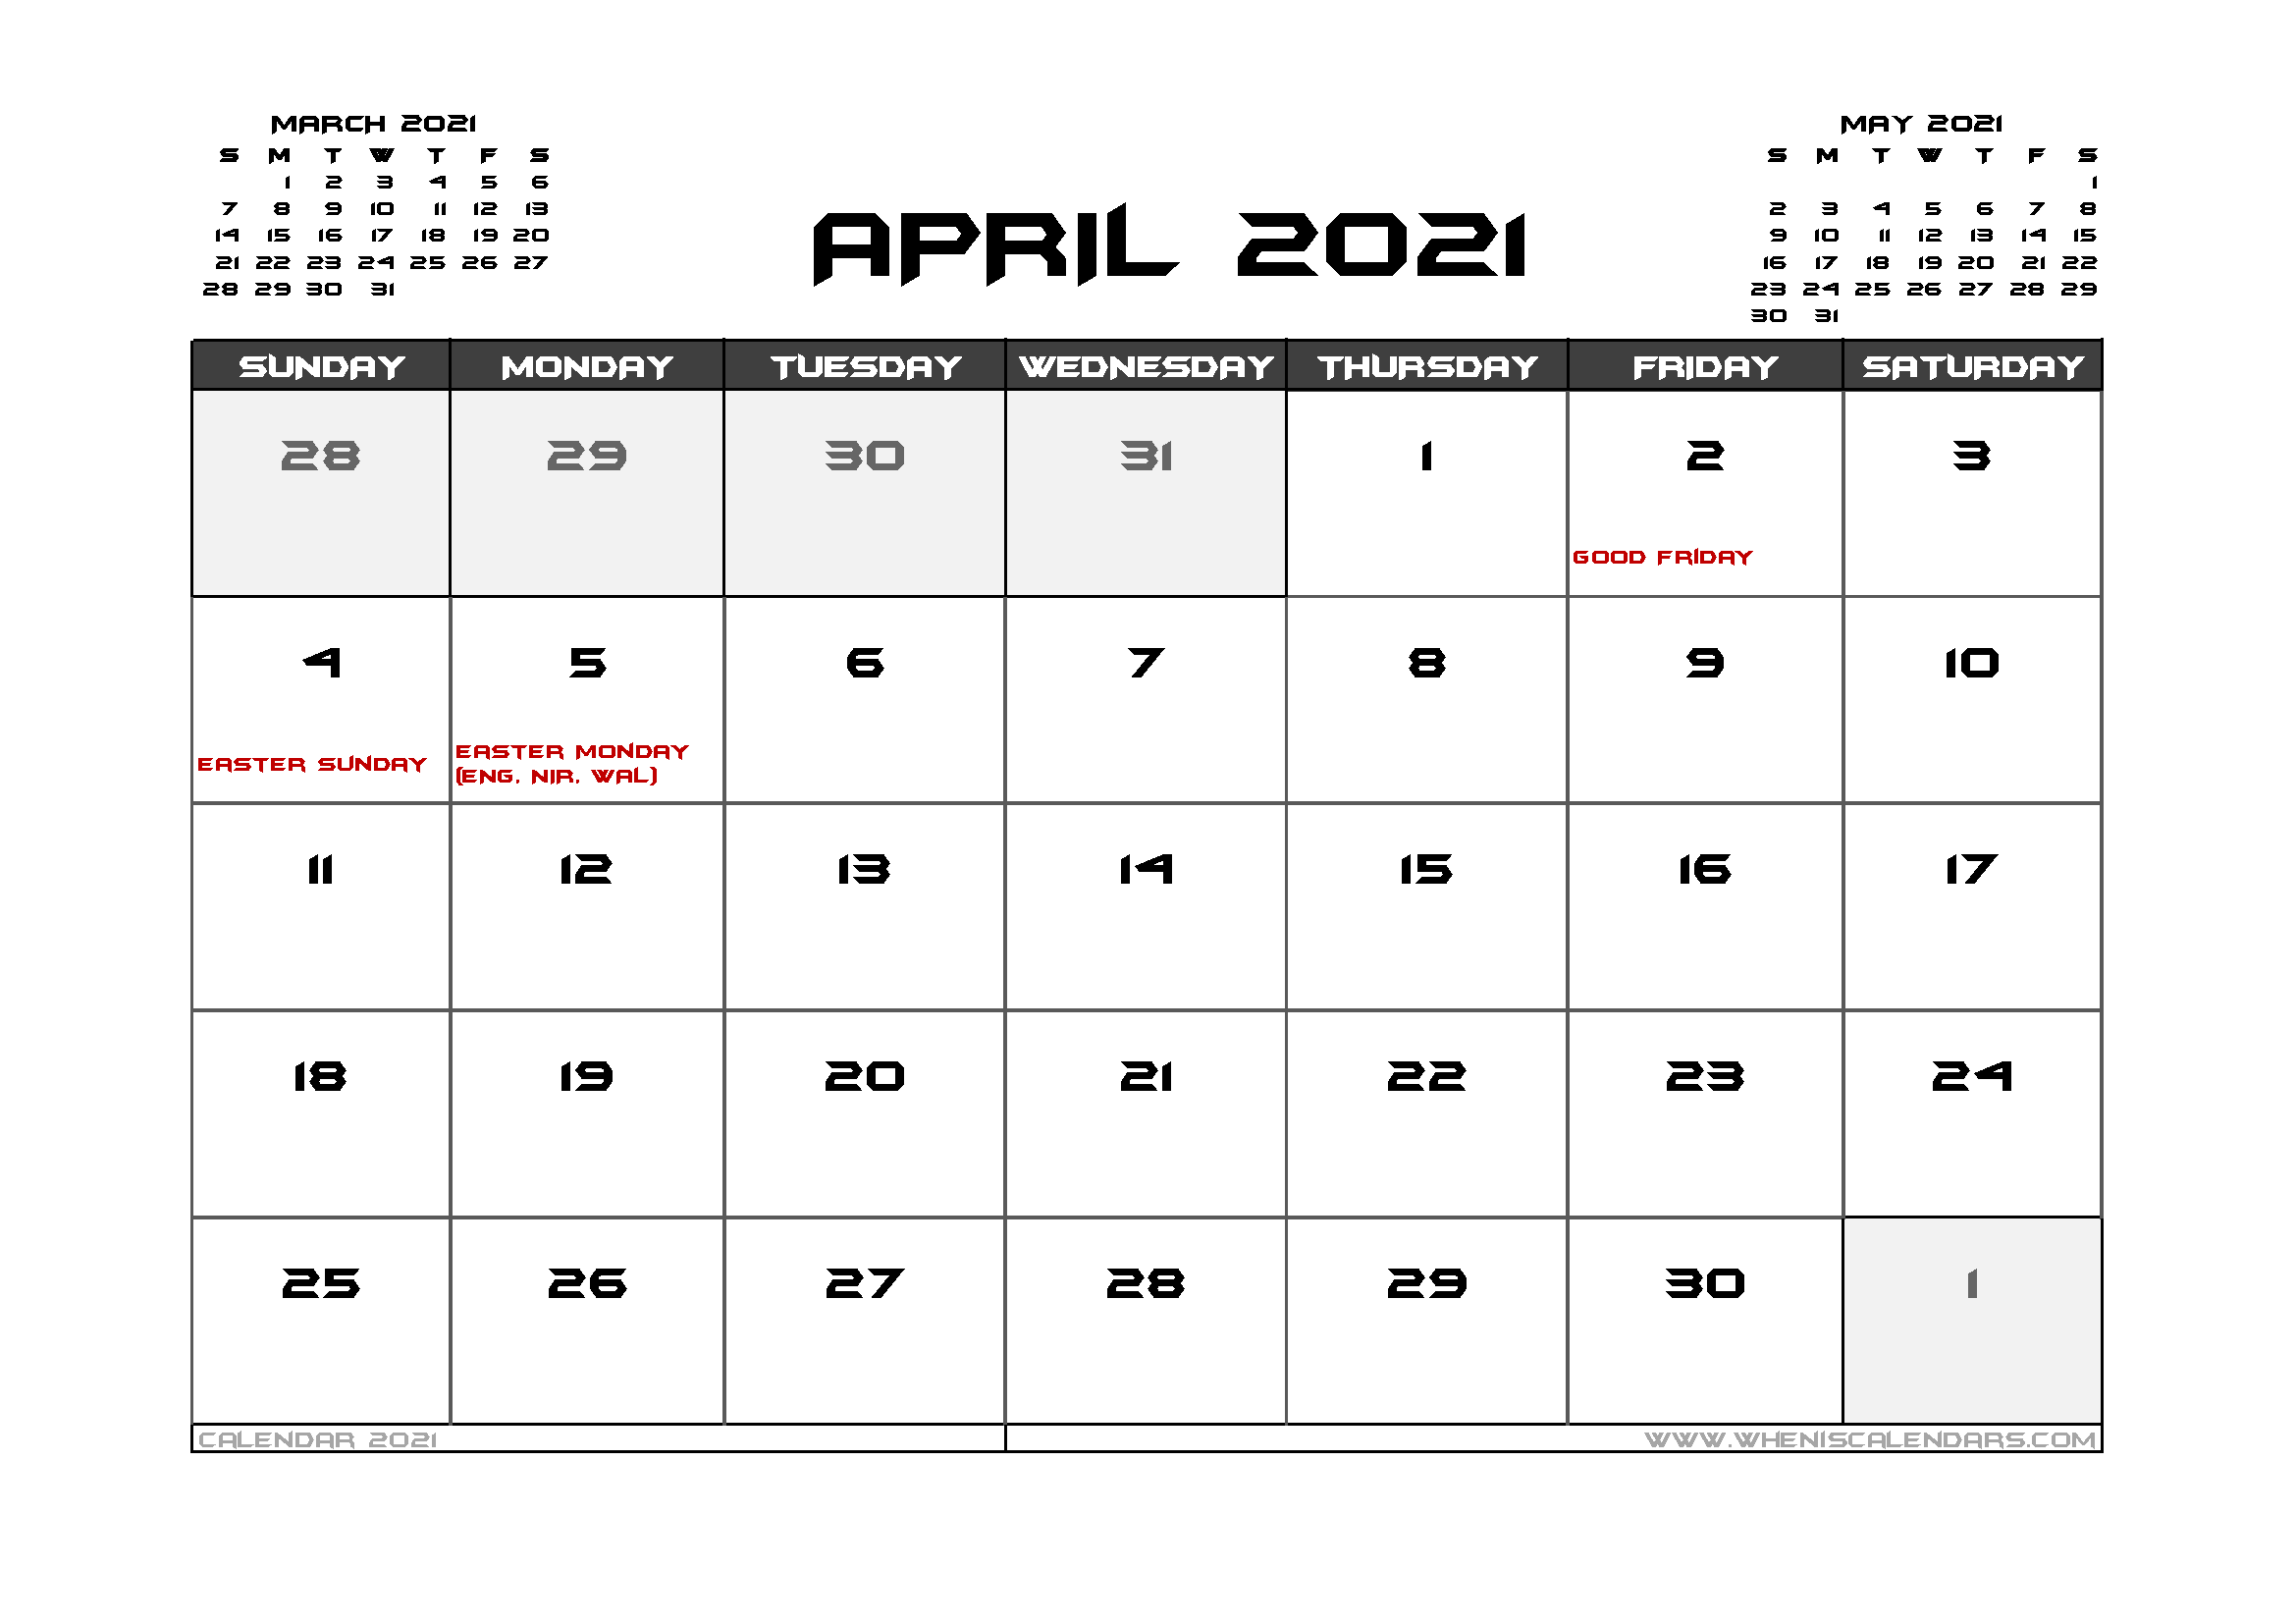 April 2021 Calendar Uk Printable Calendar Printables Calendar Uk Monthly Calendar Printable